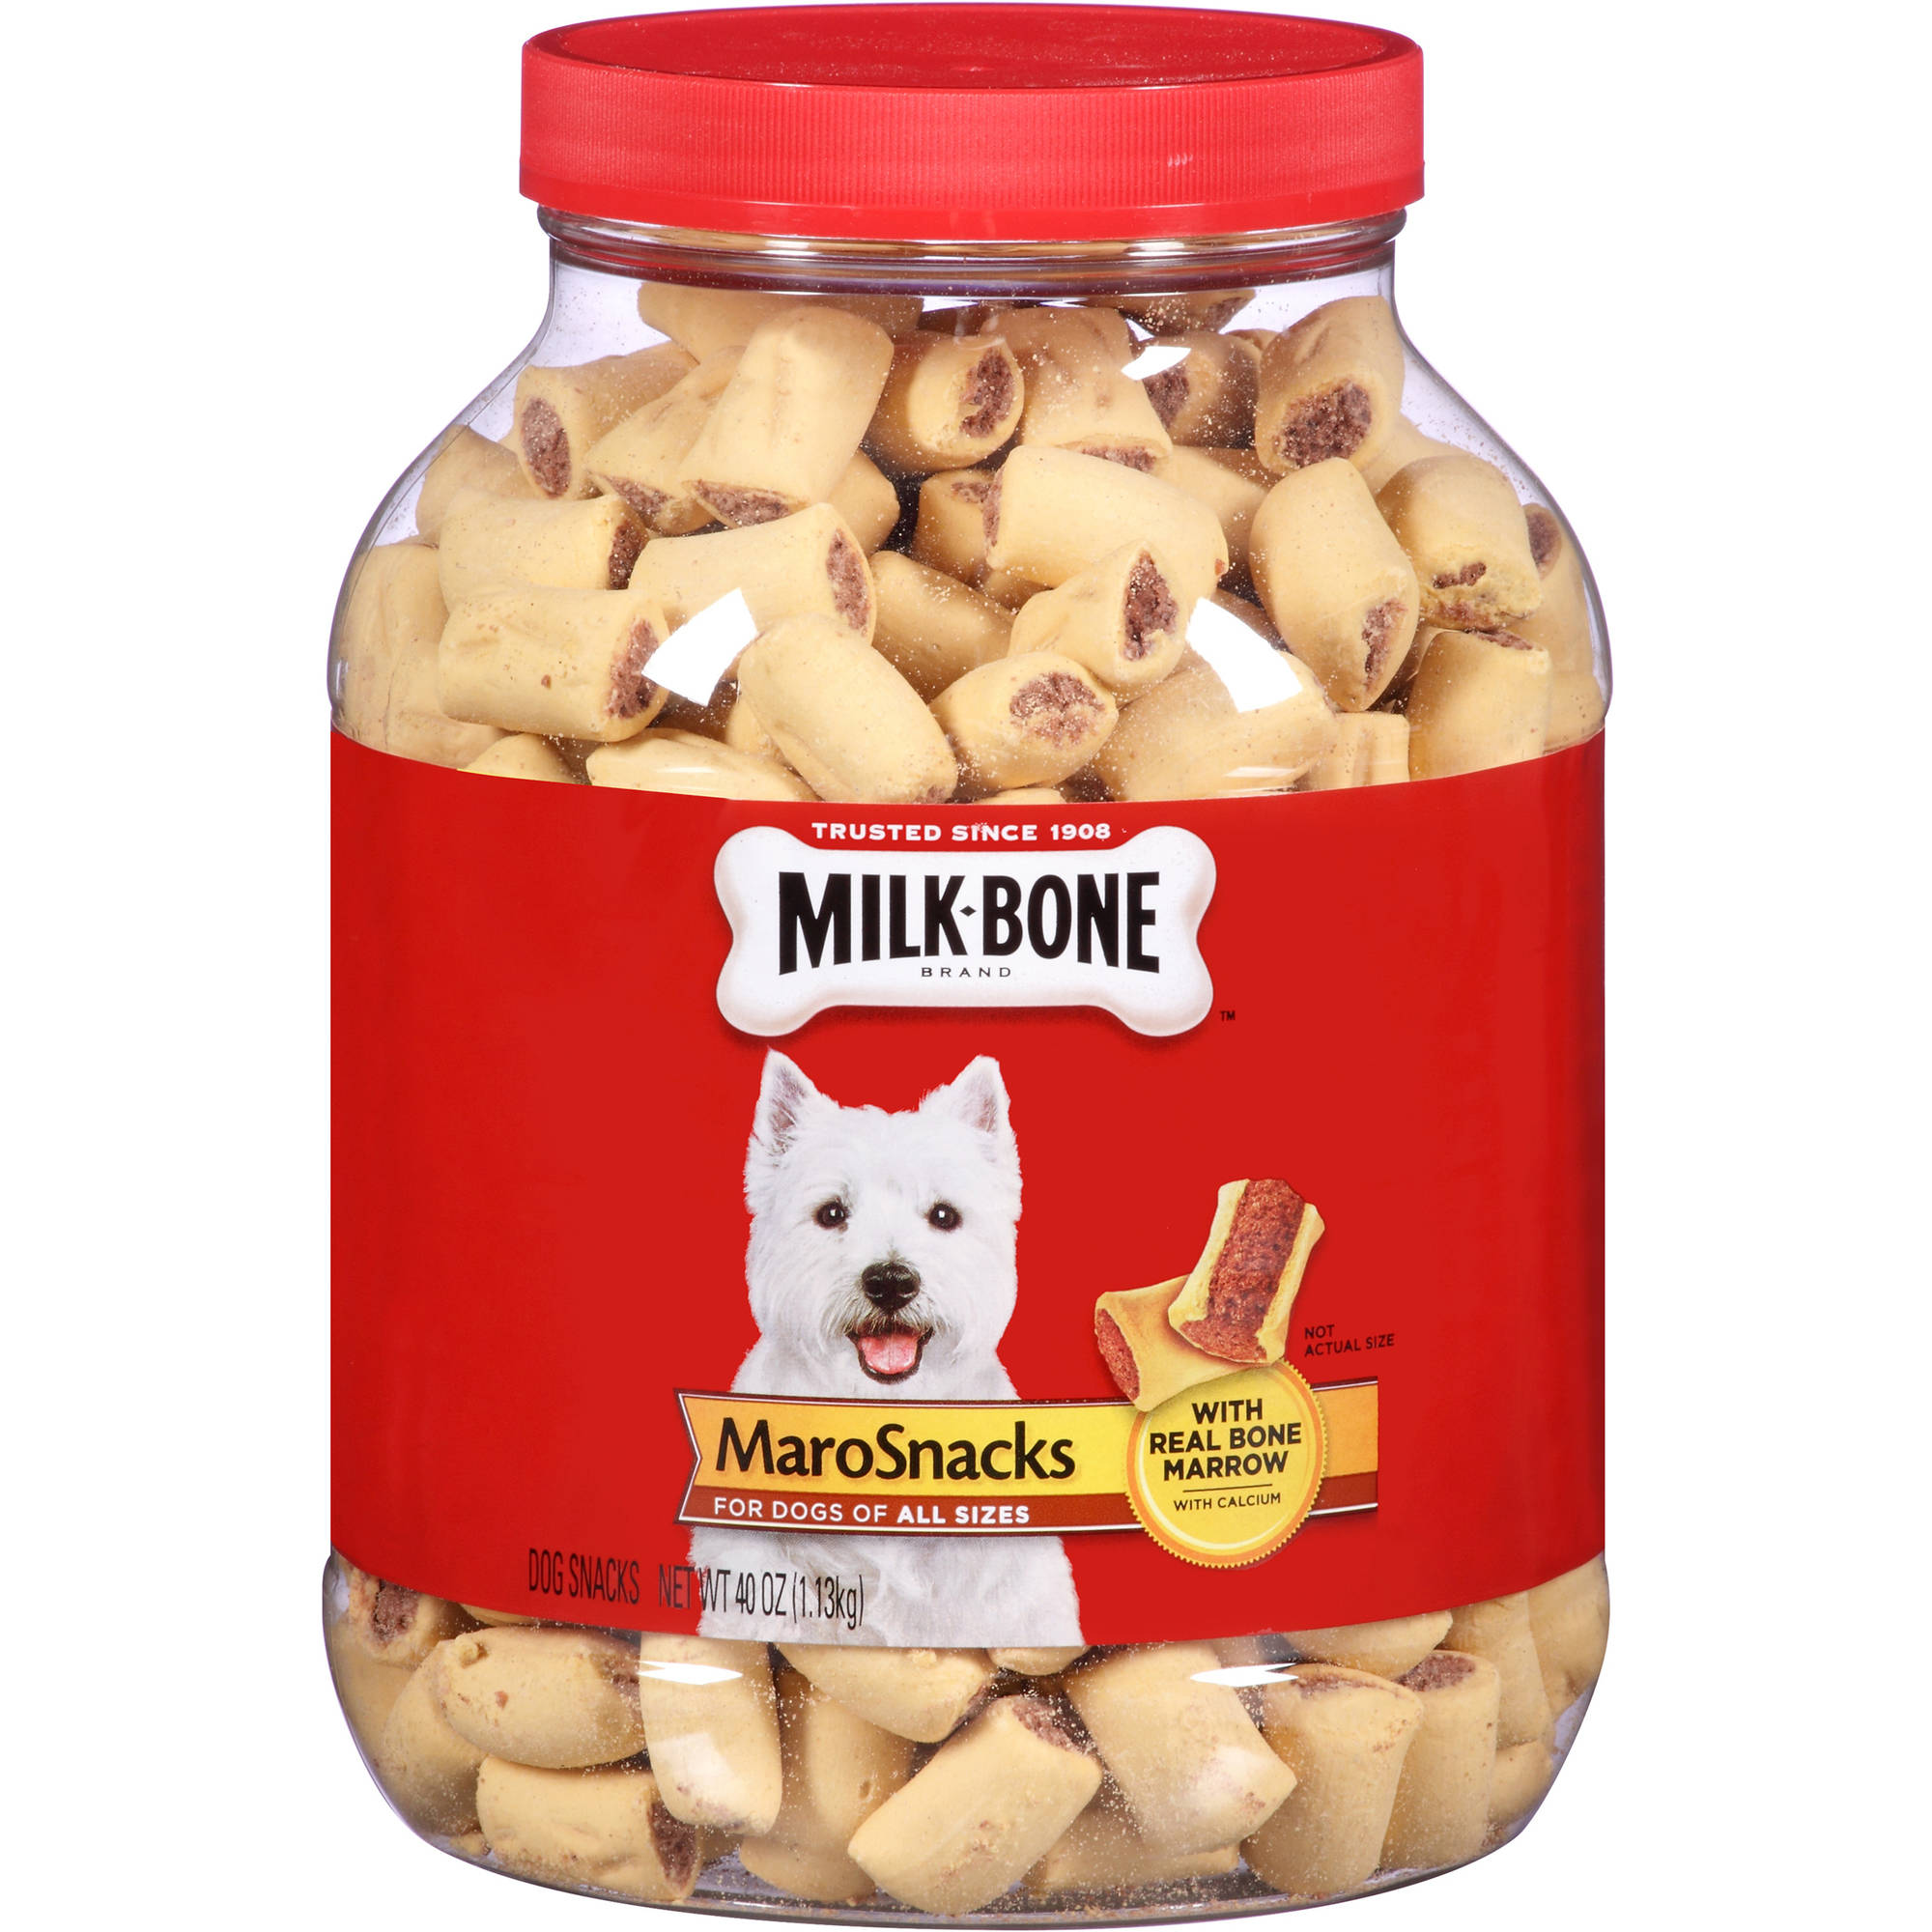 Milk-Bone MaroSnacks Crunchy Dog Treats, 40 oz